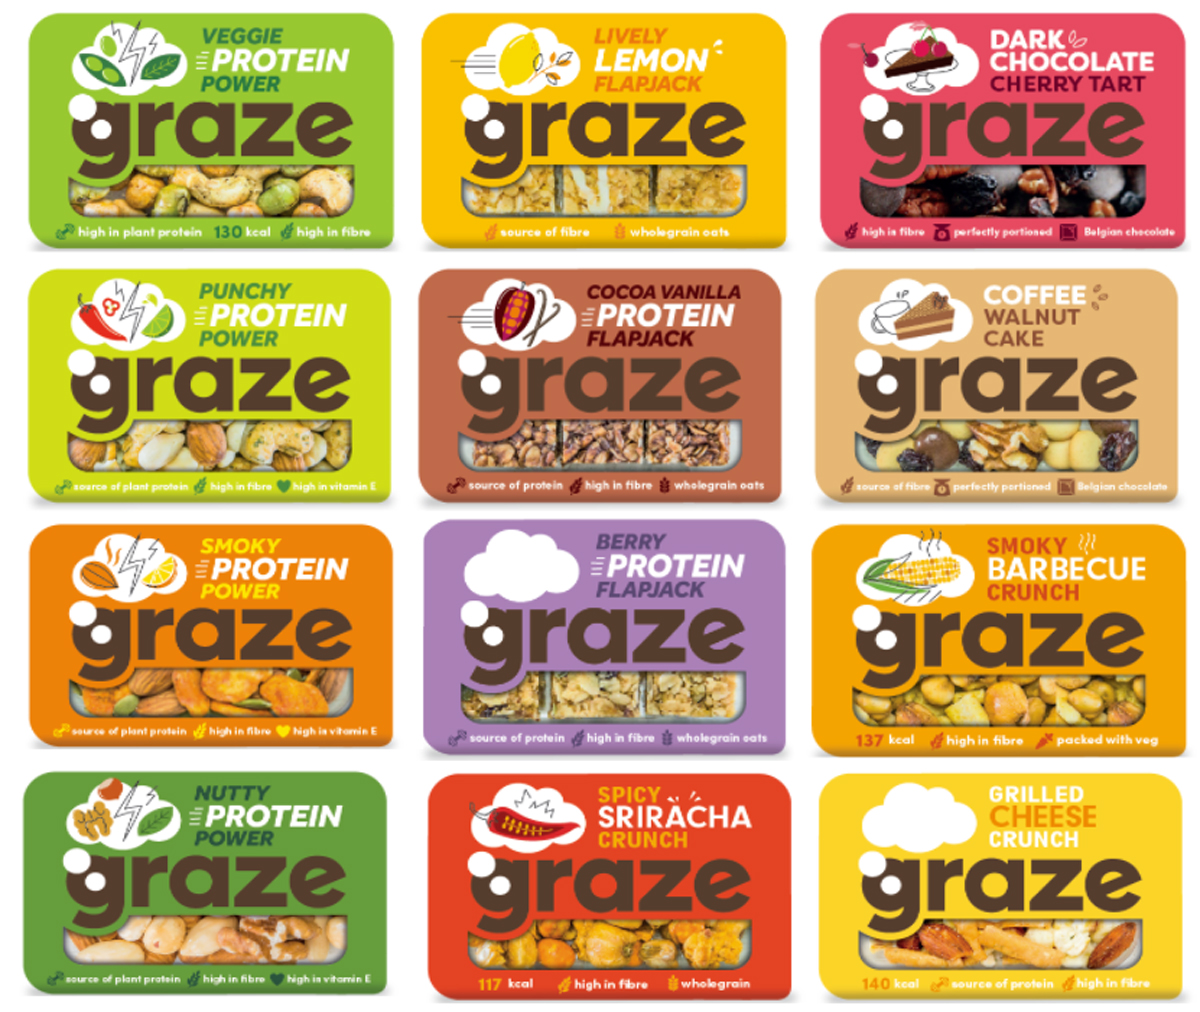 Graze healthy snacking brand, Unilever